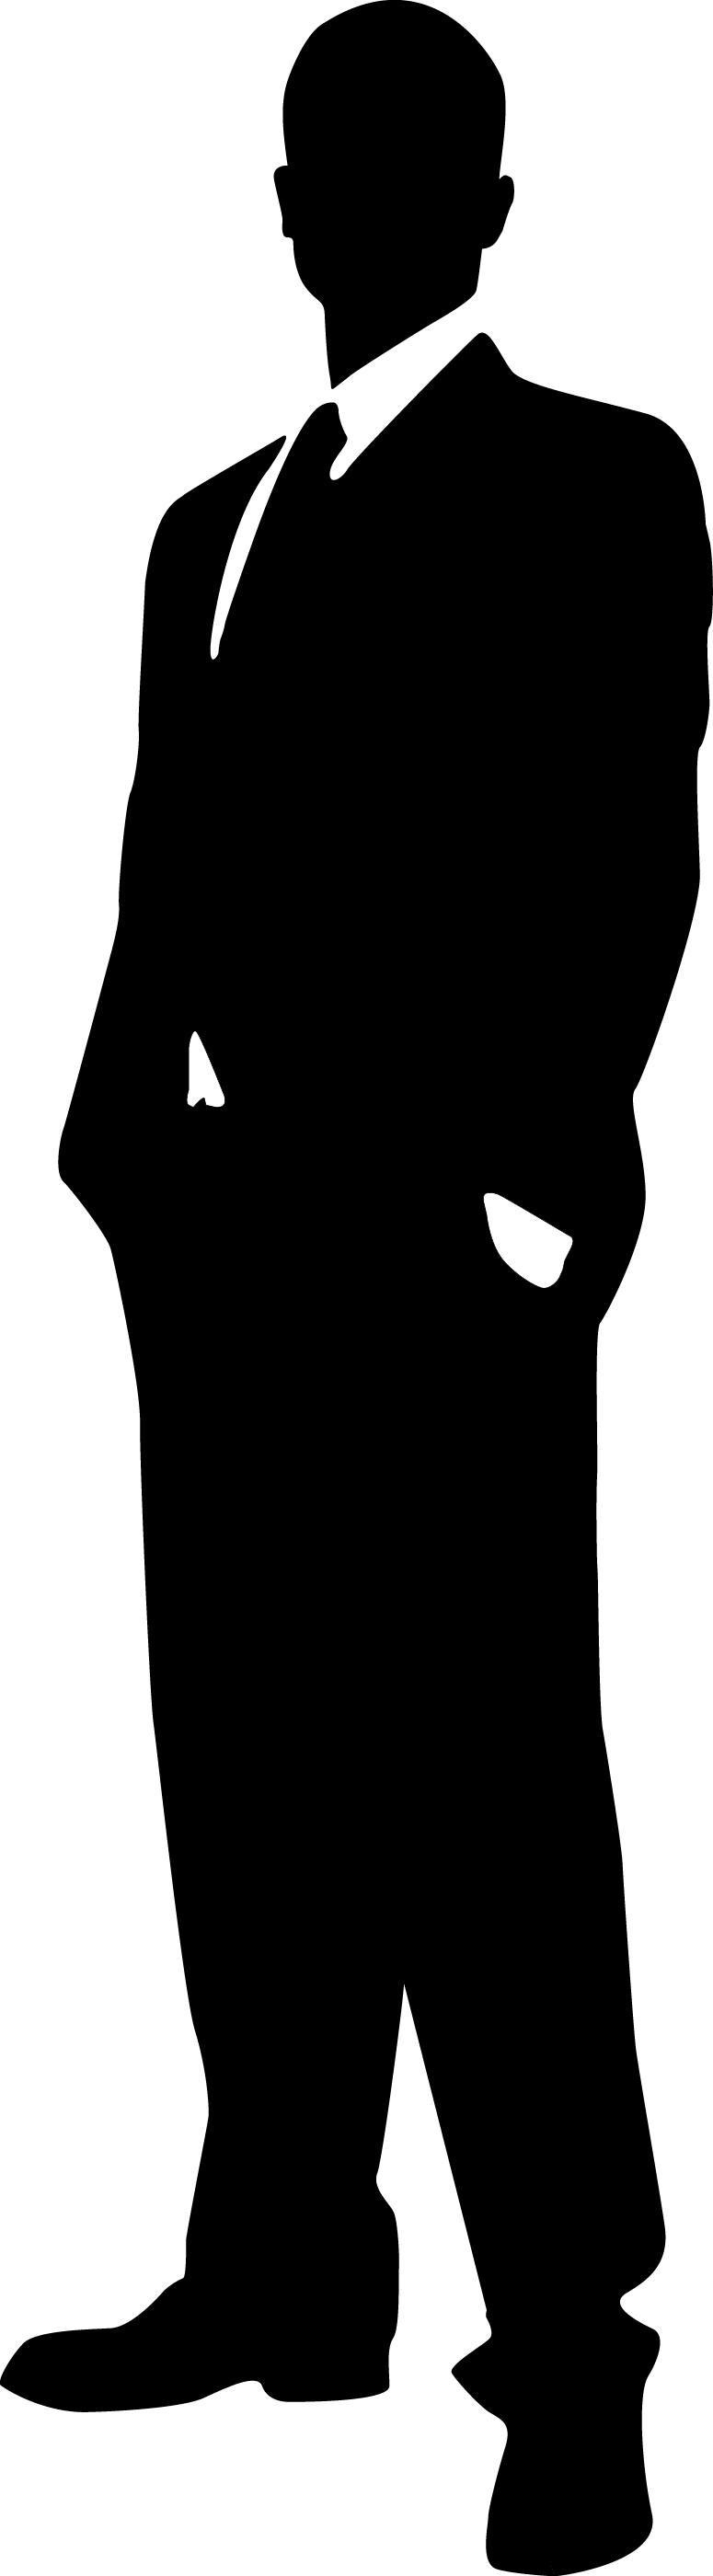 Boss clipart silhouette. Person at getdrawings com